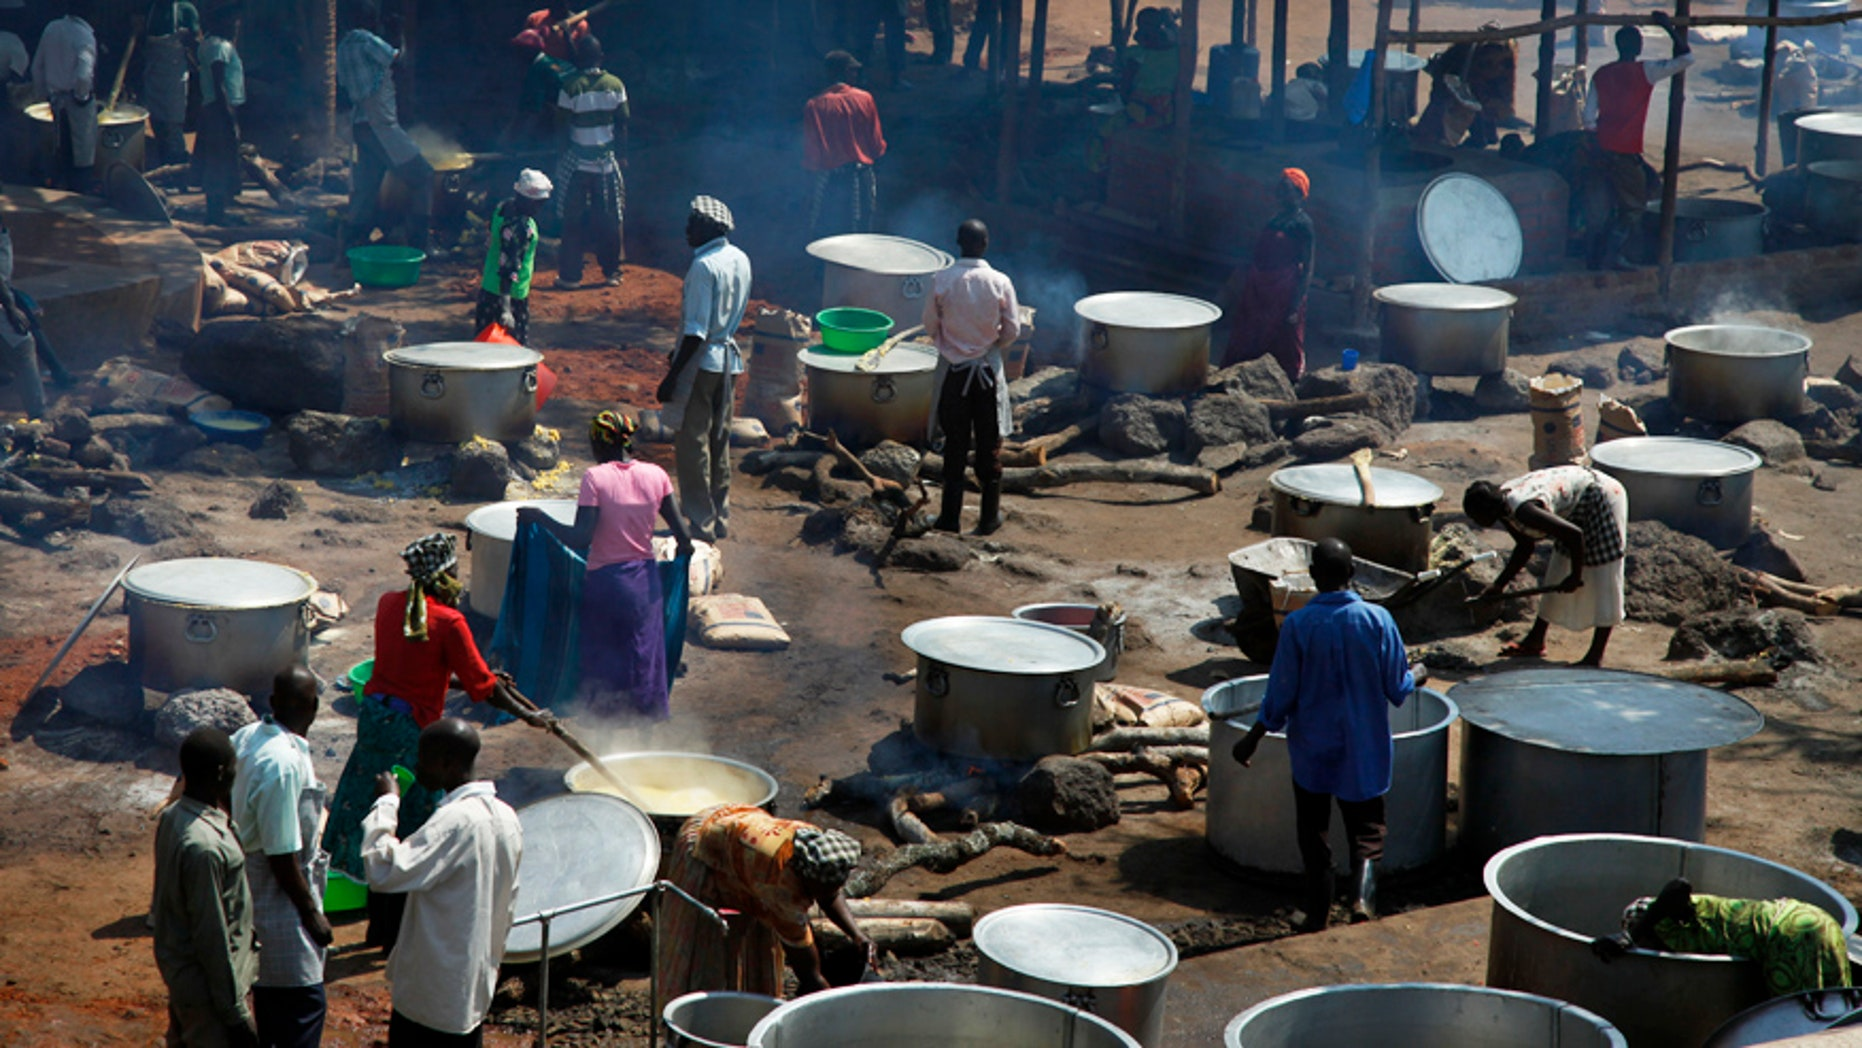 Aug. 29, 2016: Refugees prepare food in a transit center for South Sudanese refugees in the remote northwestern district of Adjumani, near the border with South Sudan, in Uganda.